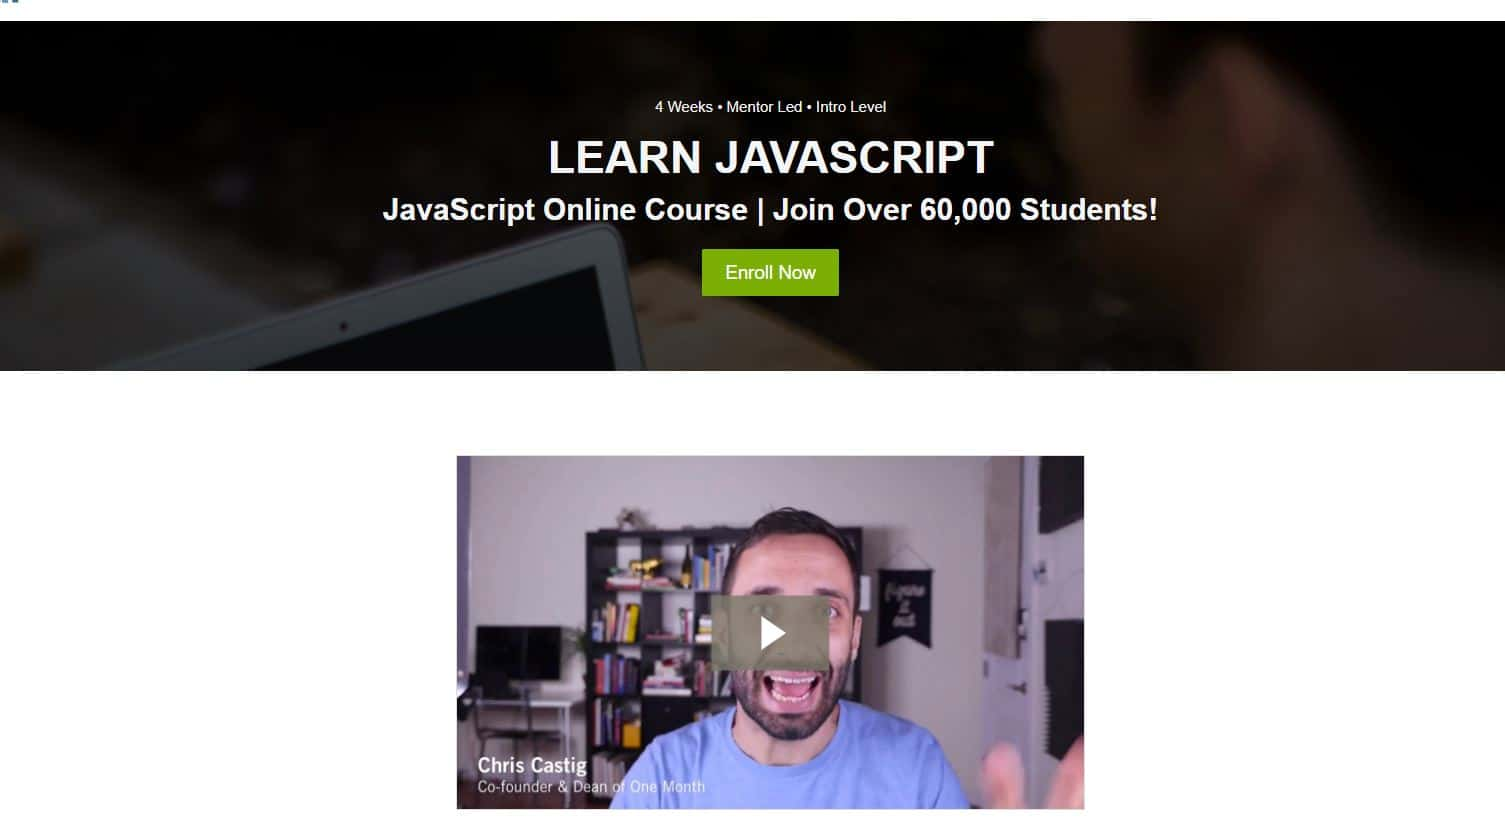 Learn JavaScript with One Month